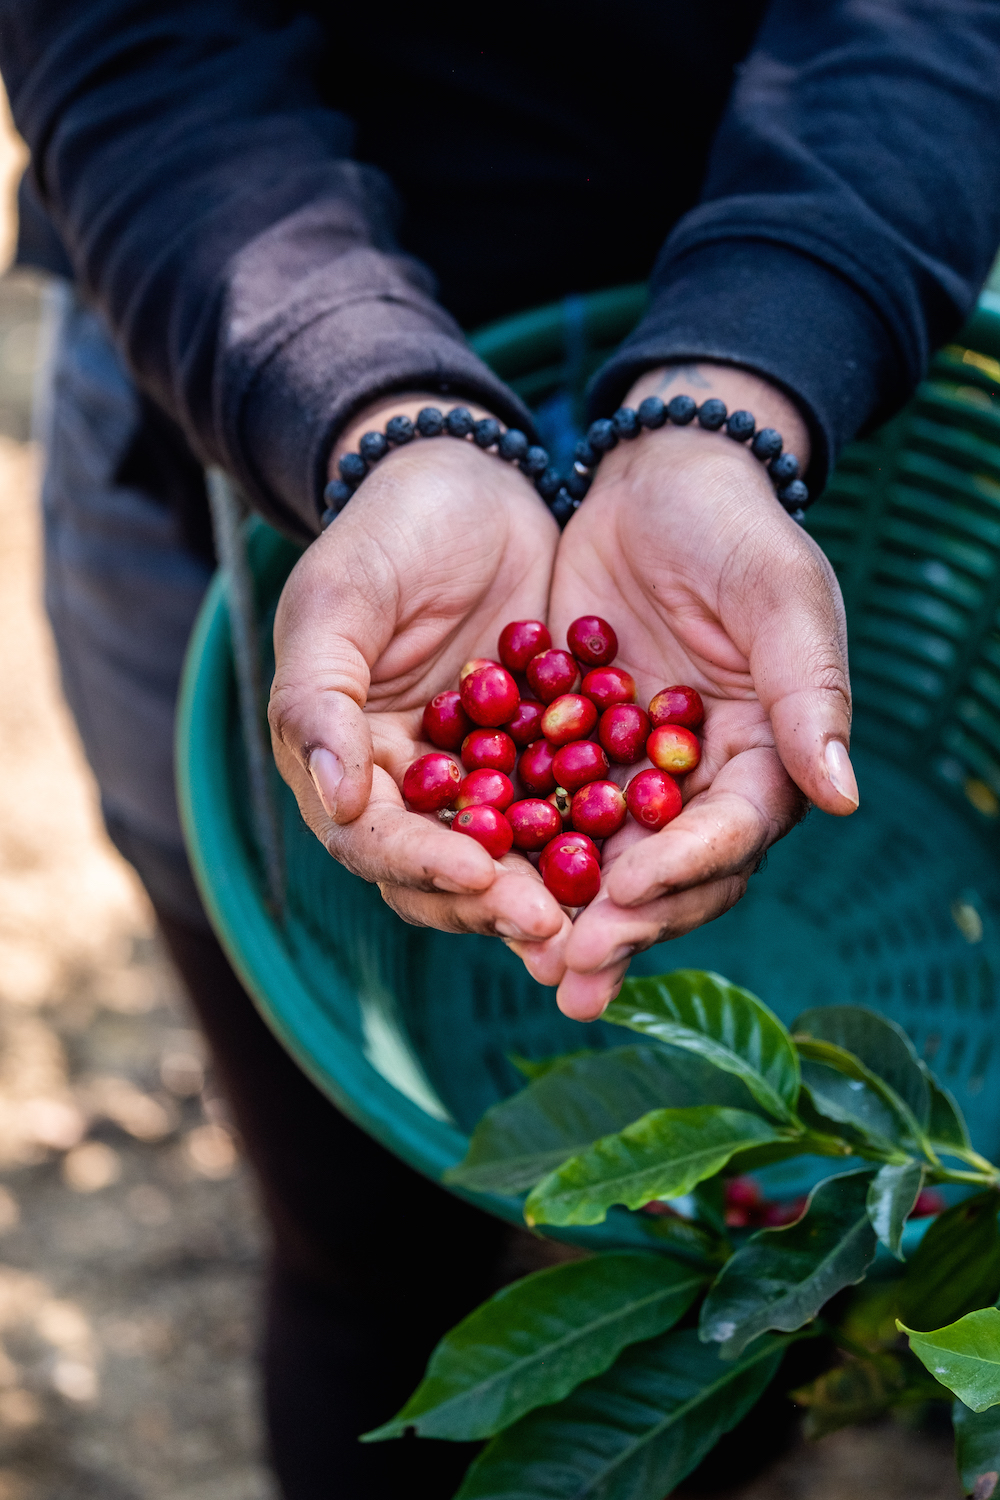 Holding freshly-picked ripe coffee cherries at a coffee farm (finca) in the Antigua region of Guatemala.